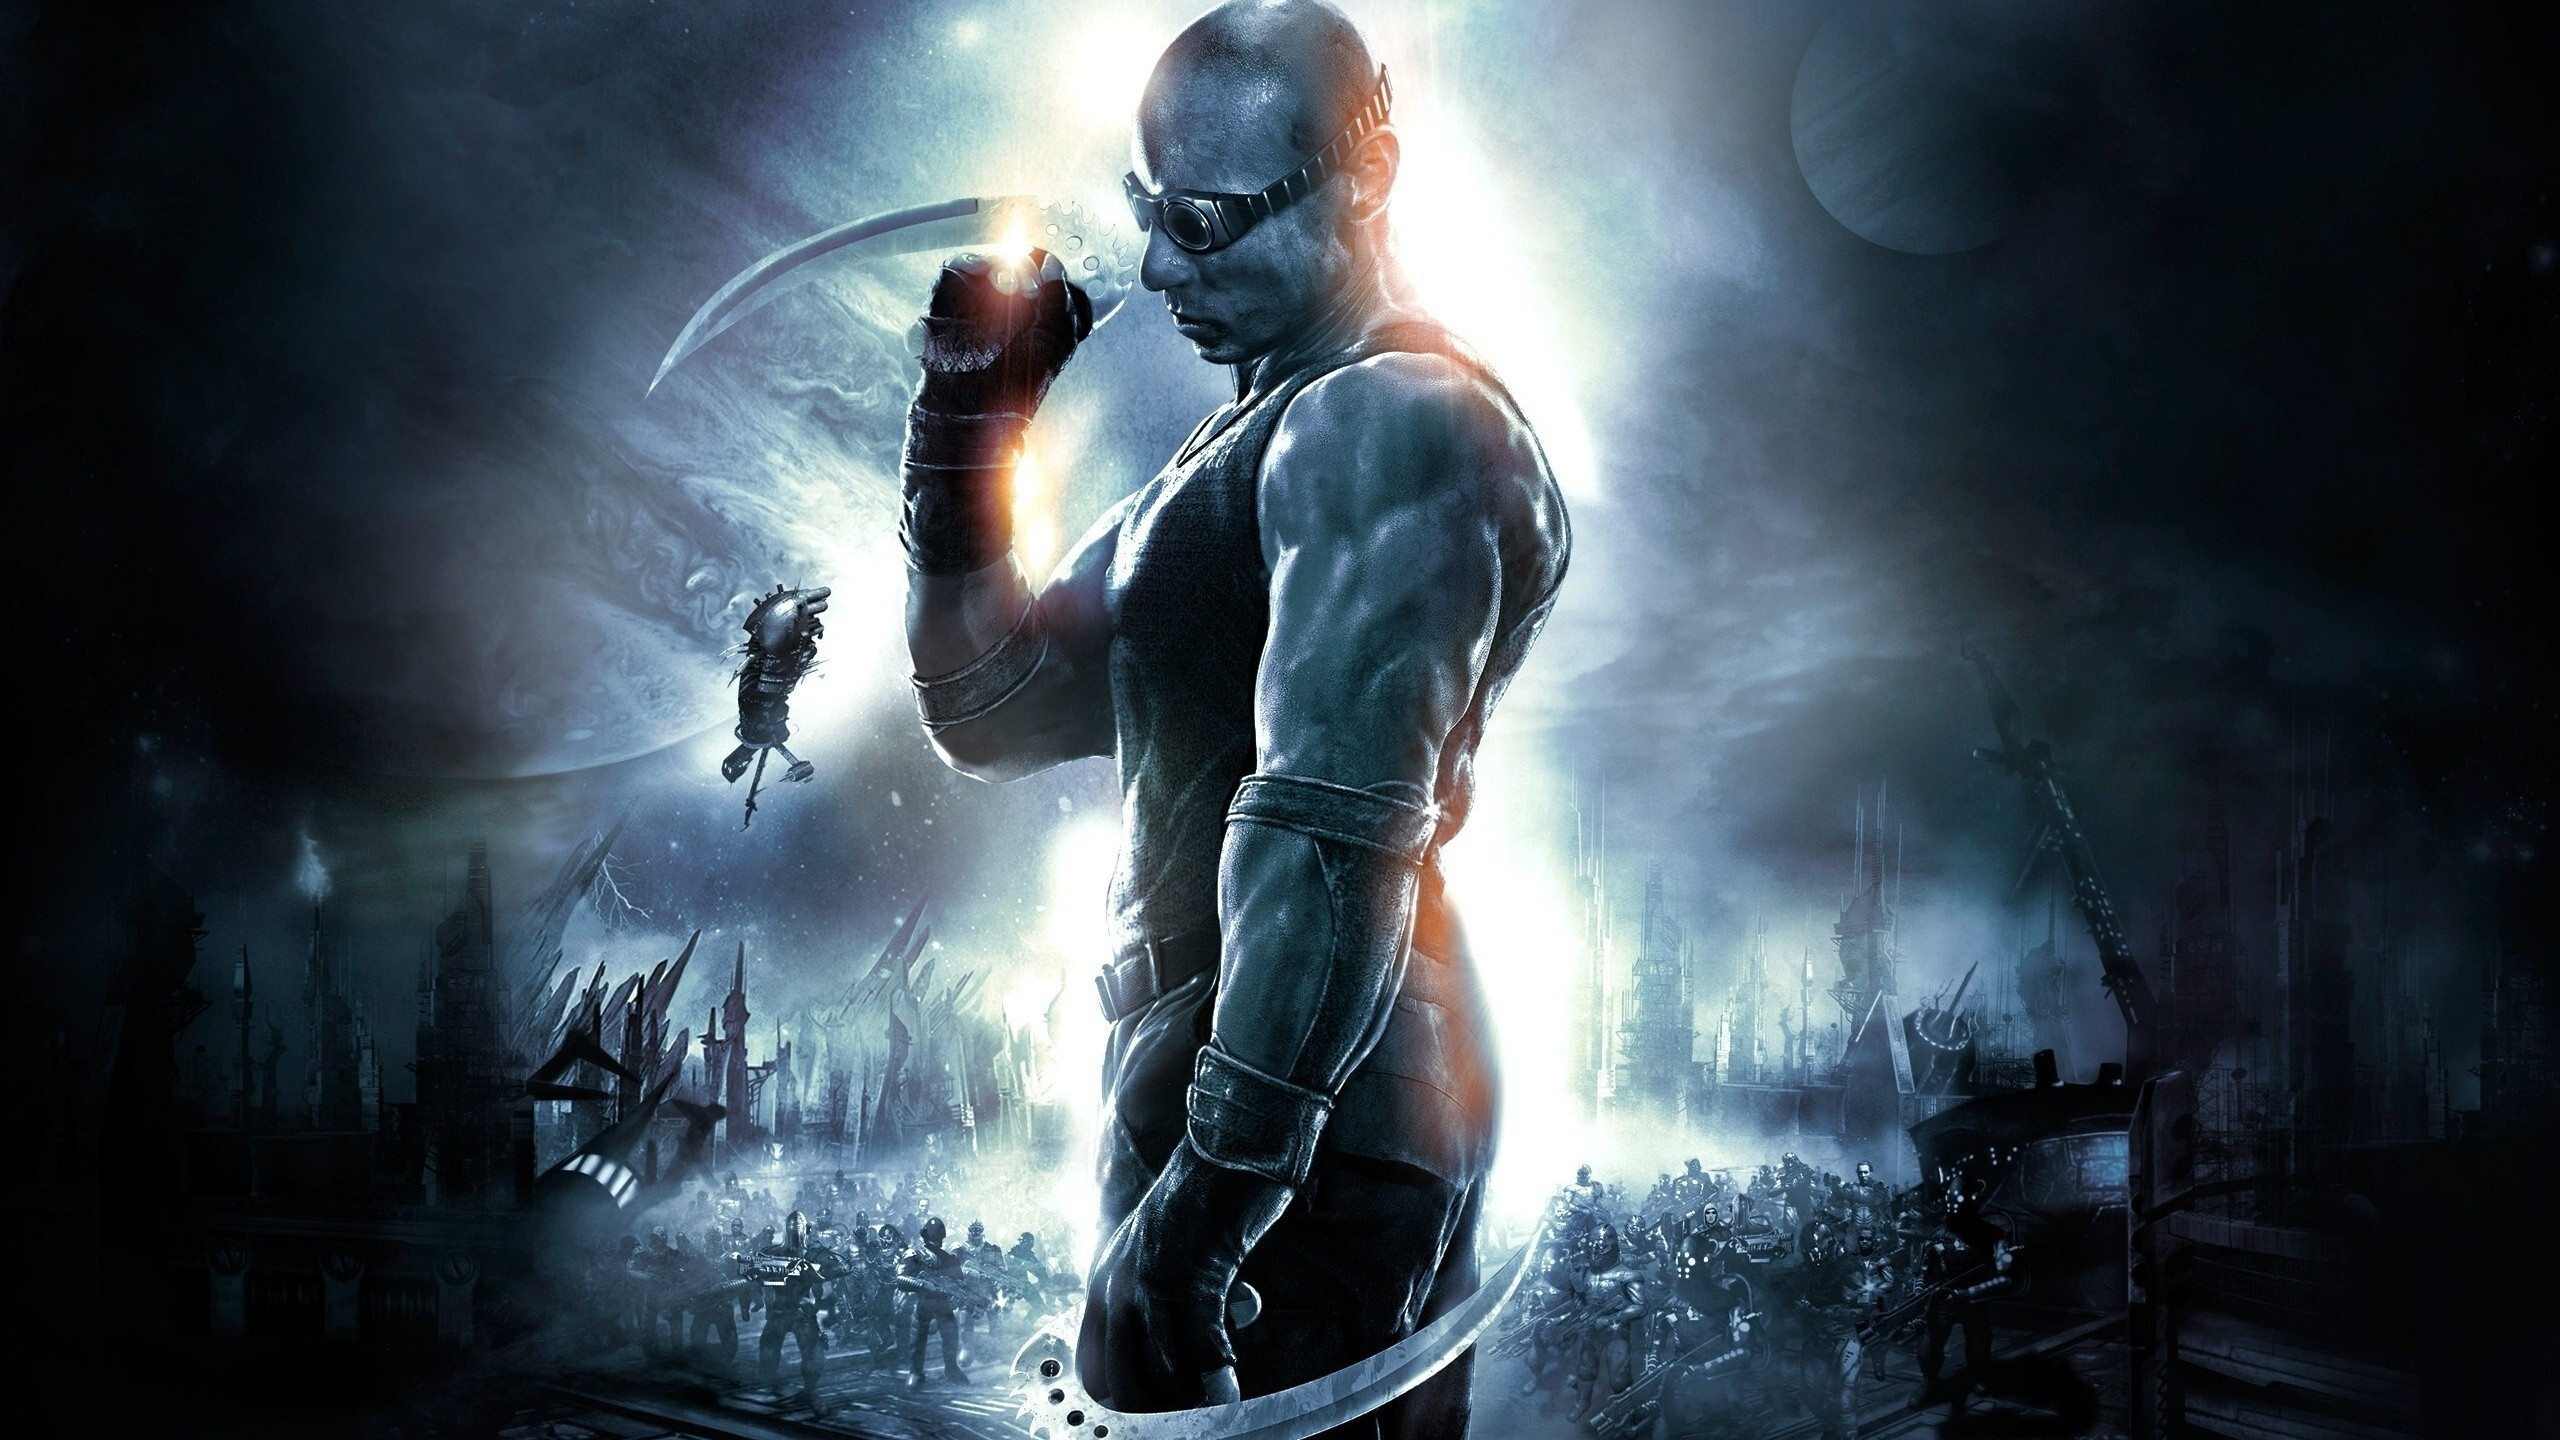 vin diesel in movie the chronicles of riddick | hd wallpapers